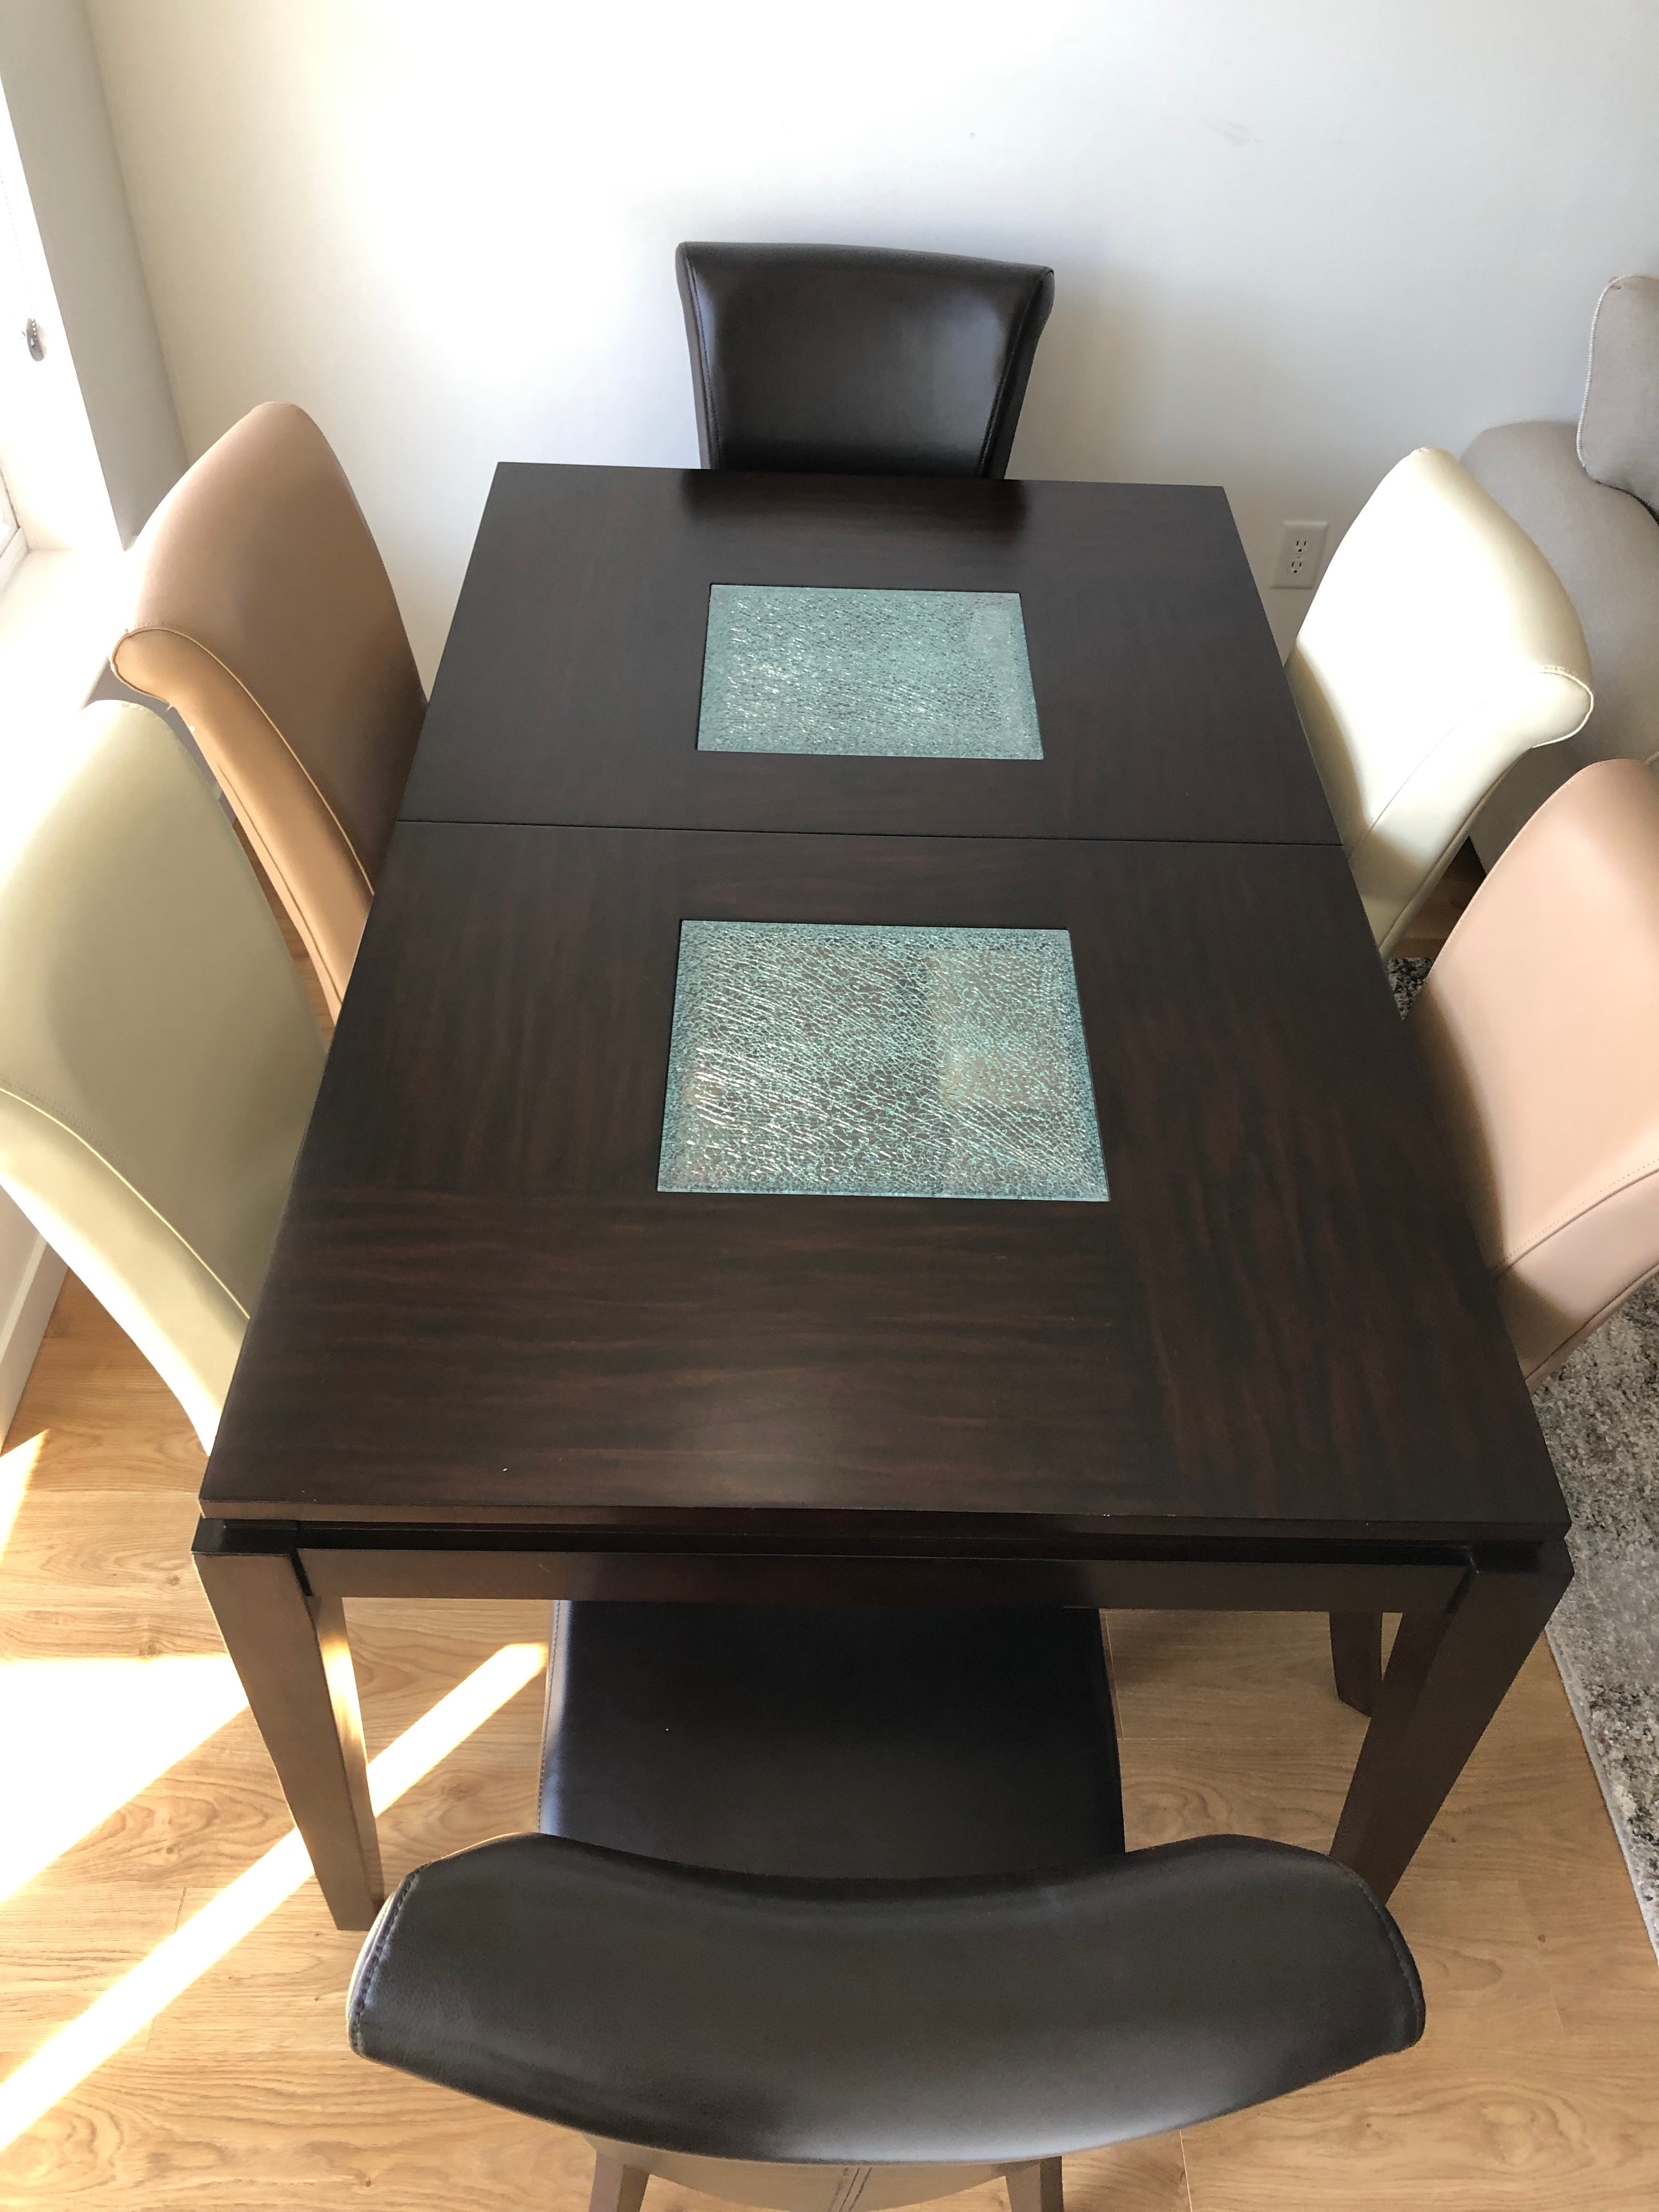 Alpine Lakeport Espresso Extension Dining Table w/ 6 Chairs